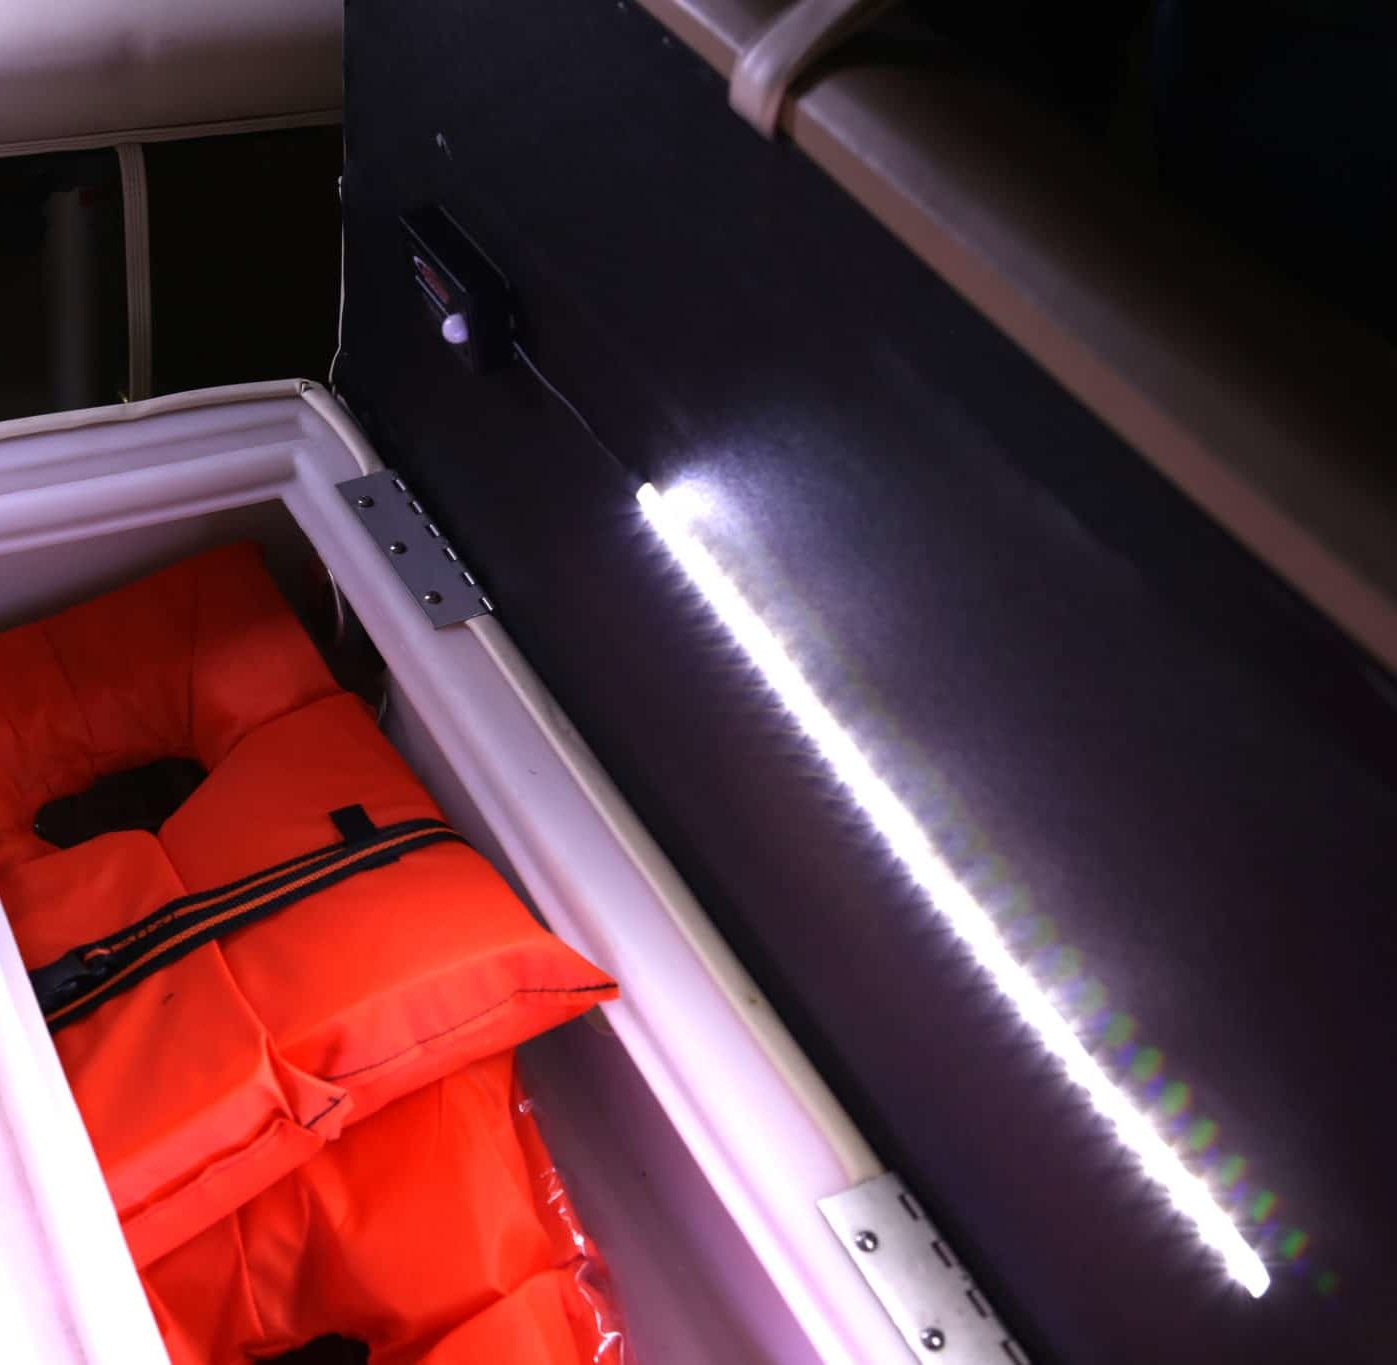 Motion Activated LED Lights in Boat